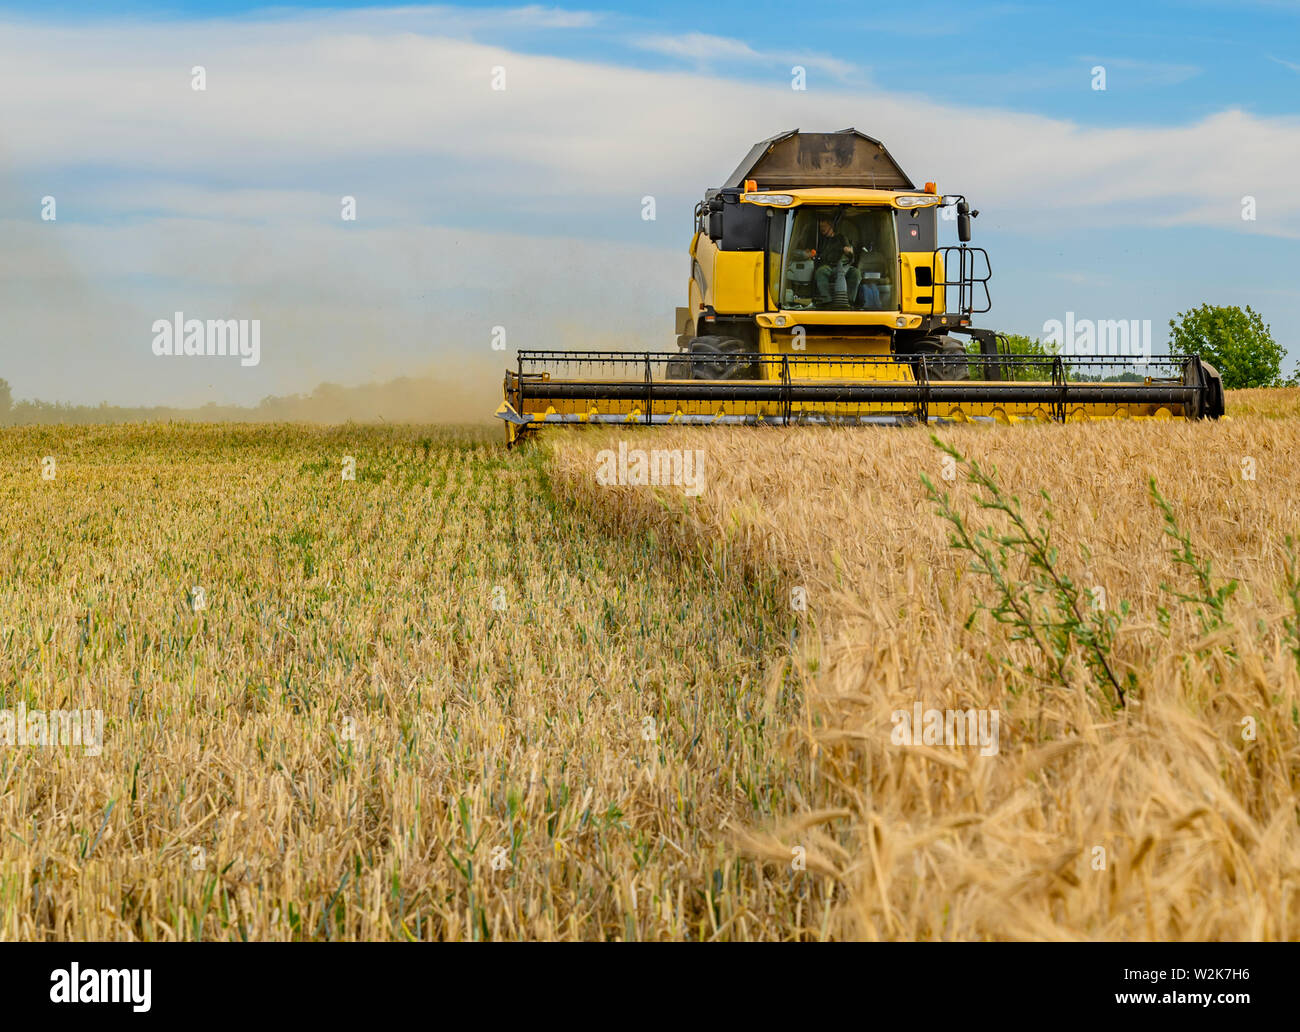 Berlin, Germany - July 05, 2019: Front view of a moving combine harvester on a field near Berlin under a cloudy sky. Stock Photo